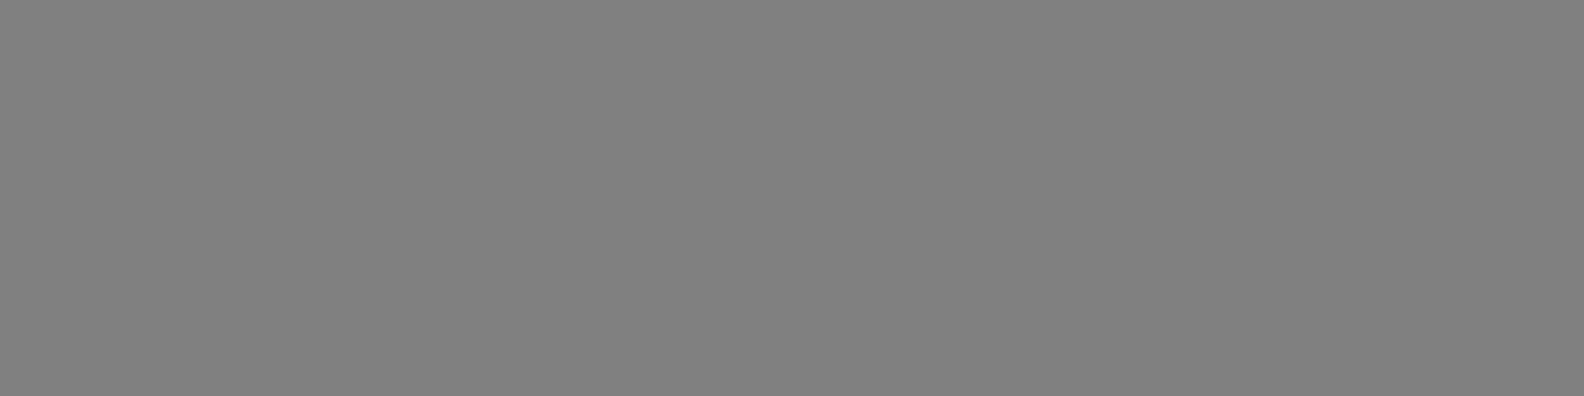 1584x396 Gray Solid Color Background